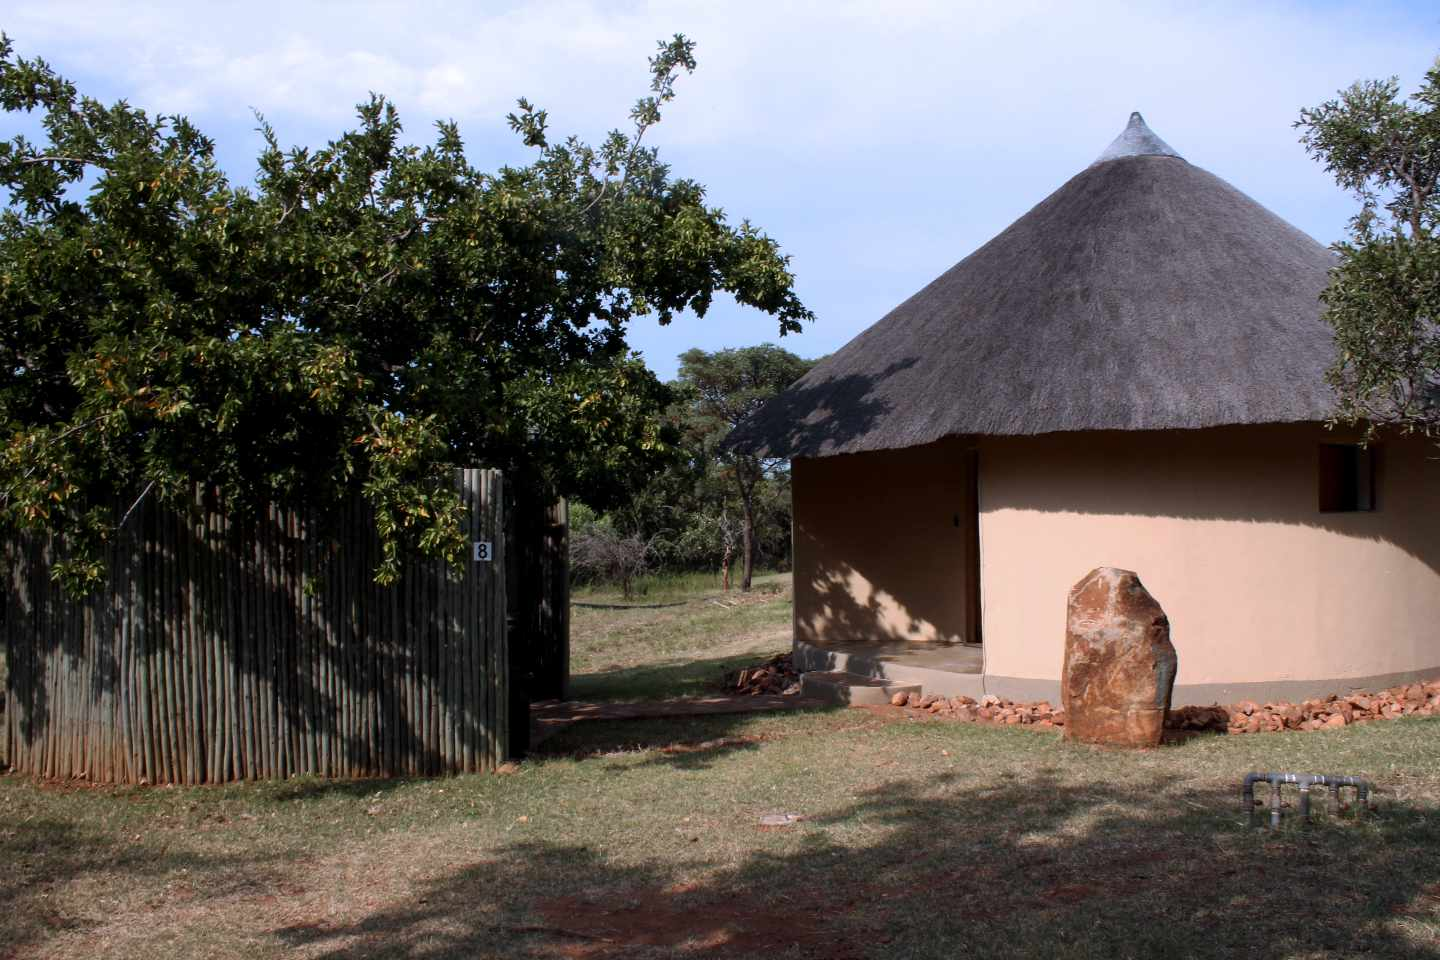 Hartbeespoort South Africa  City new picture : Out of Africa Village Self Catering, Hartbeespoort, South Africa